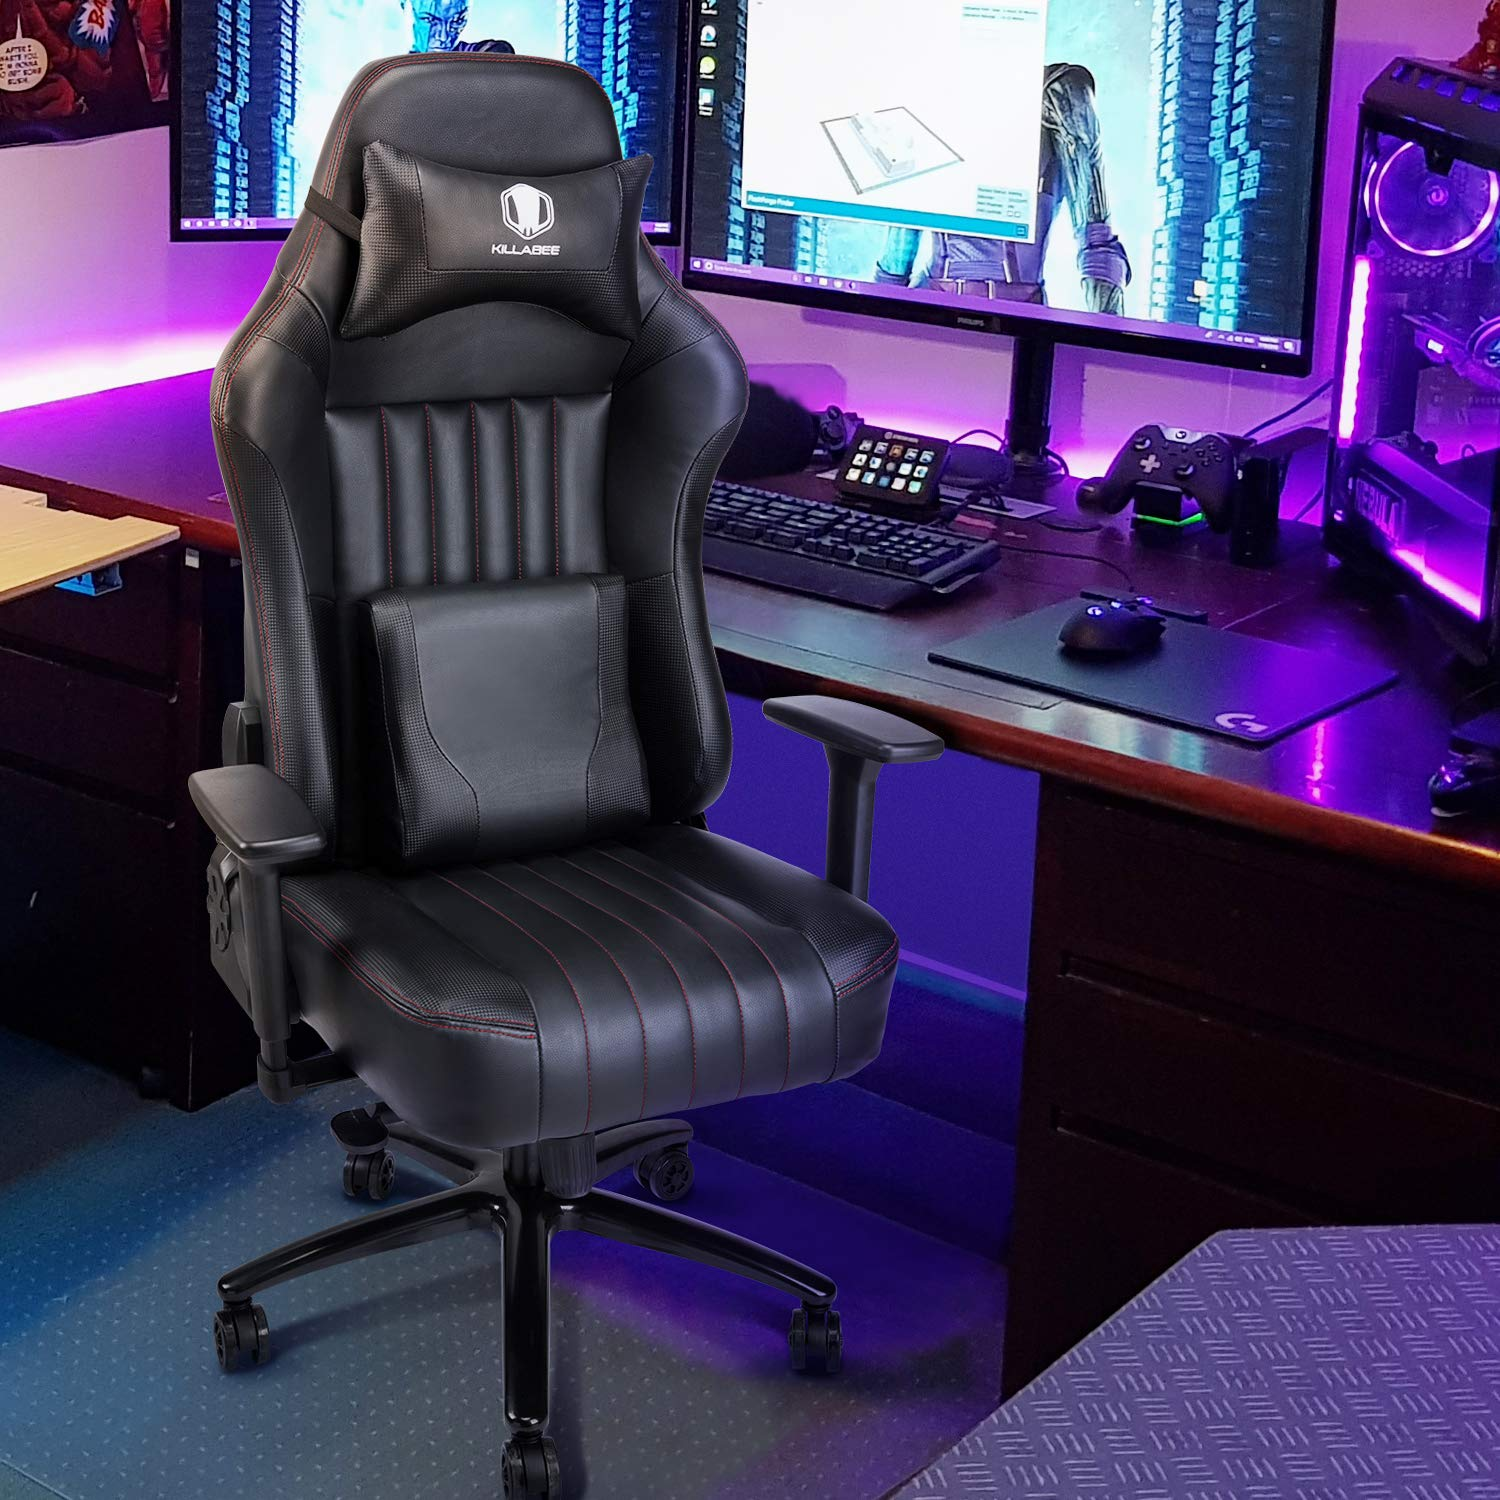 KILLABEE Big and Tall 400lb Memory Foam Gaming Chair - Adjustable Tilt, Back Angle and 3D Arms Ergonomic High-Back Leather Racing Executive Computer Desk Office Chair Metal Base, Black by KILLABEE (Image #7)